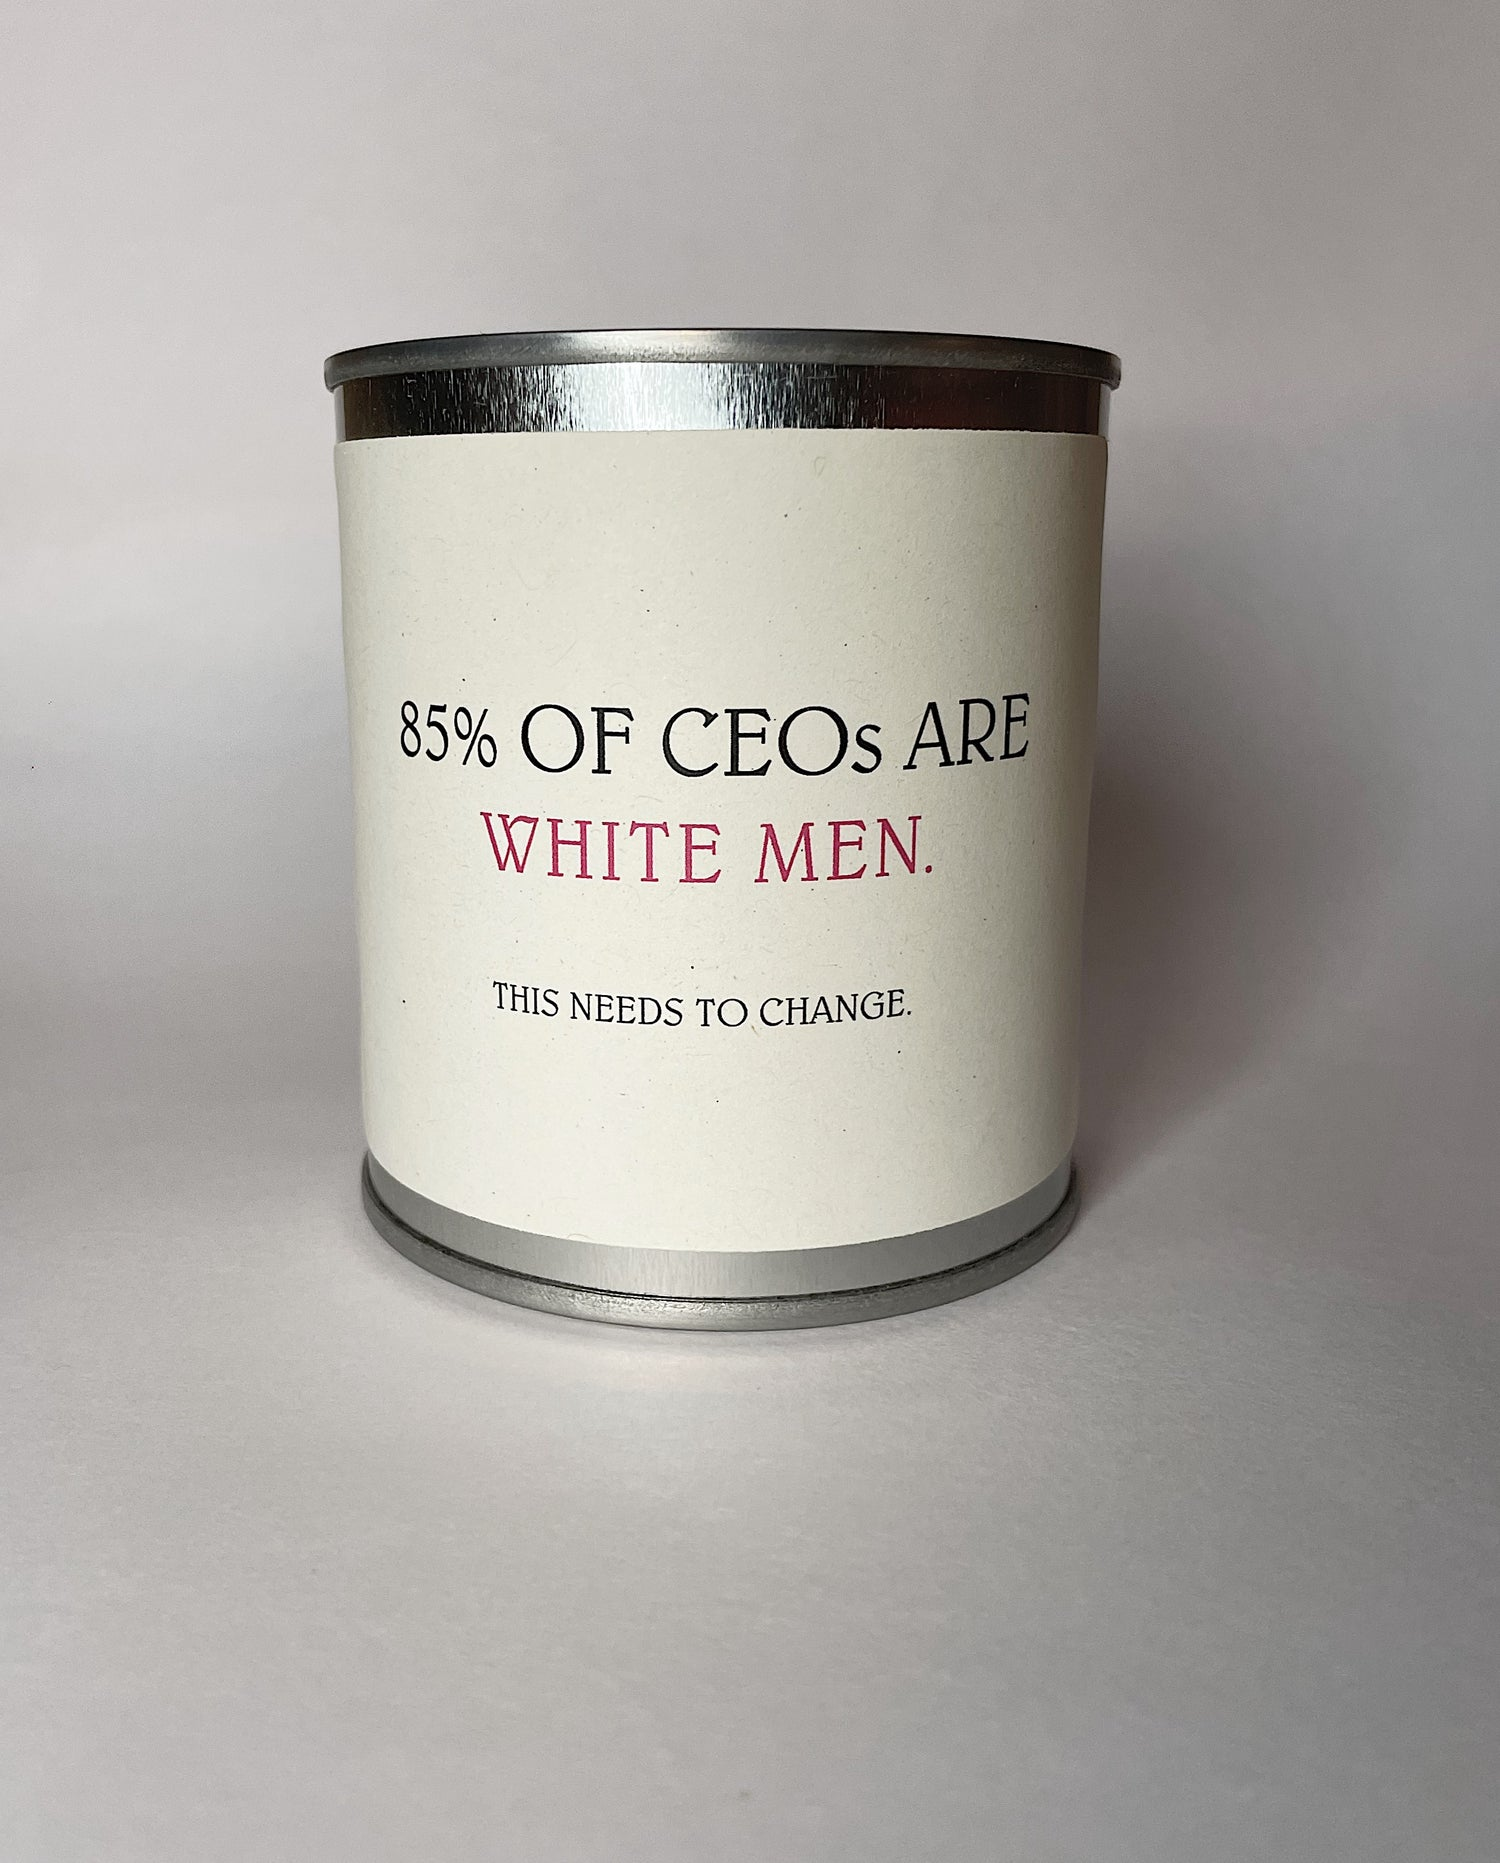 '85% of CEOs are White Men' Candle